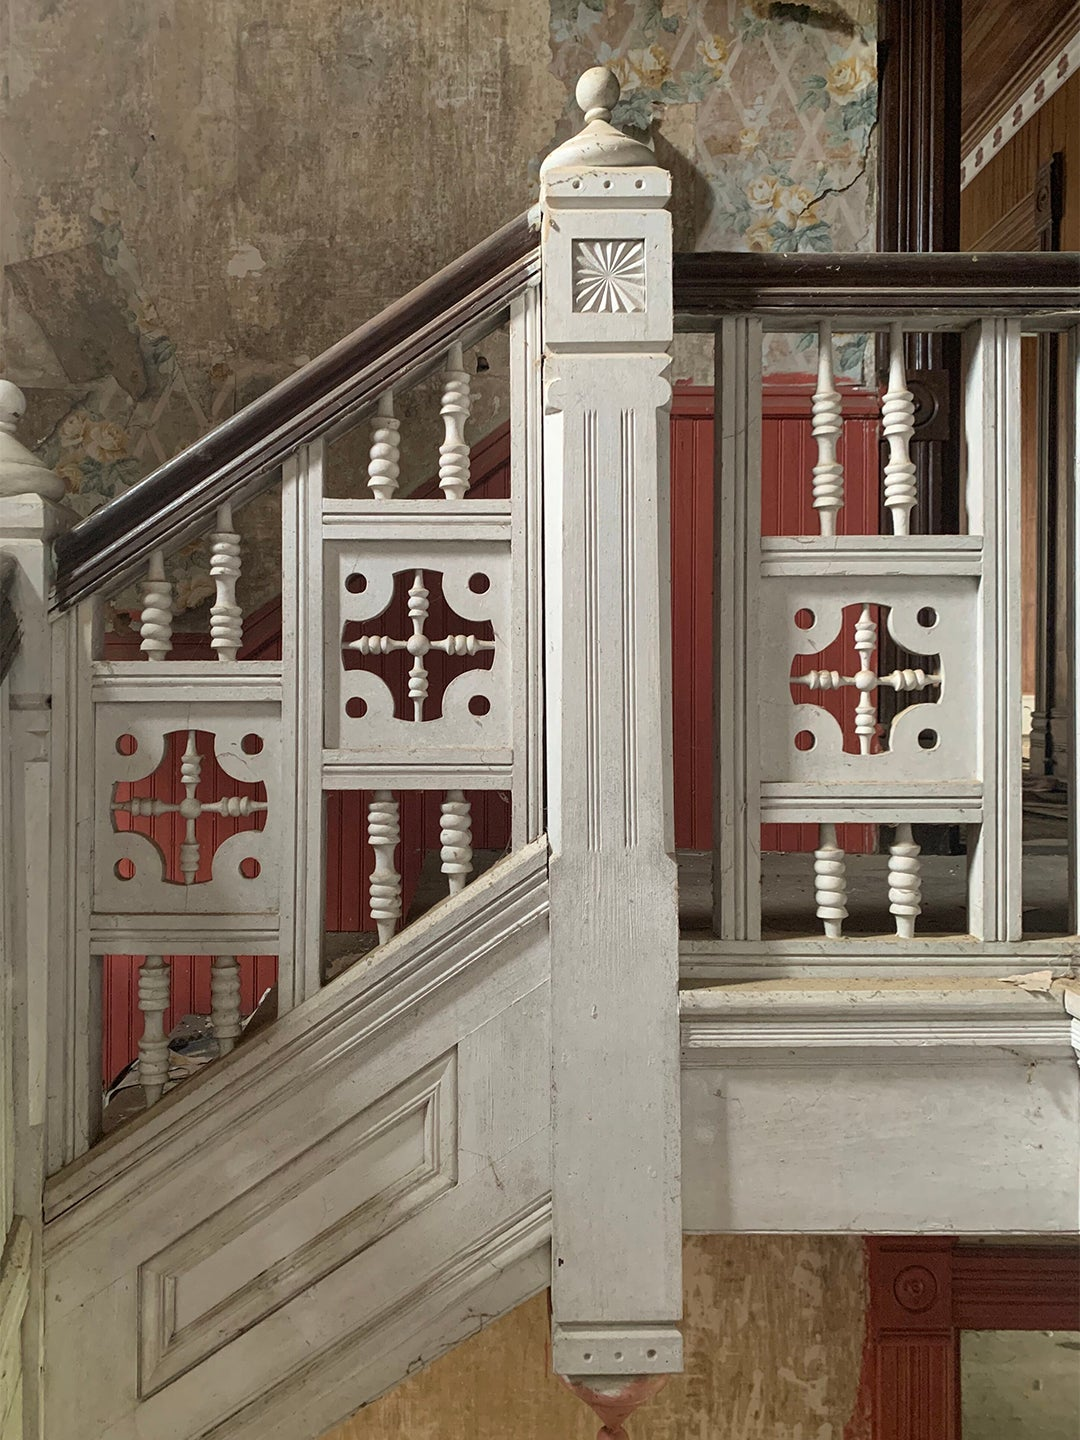 Old fashioned staircase